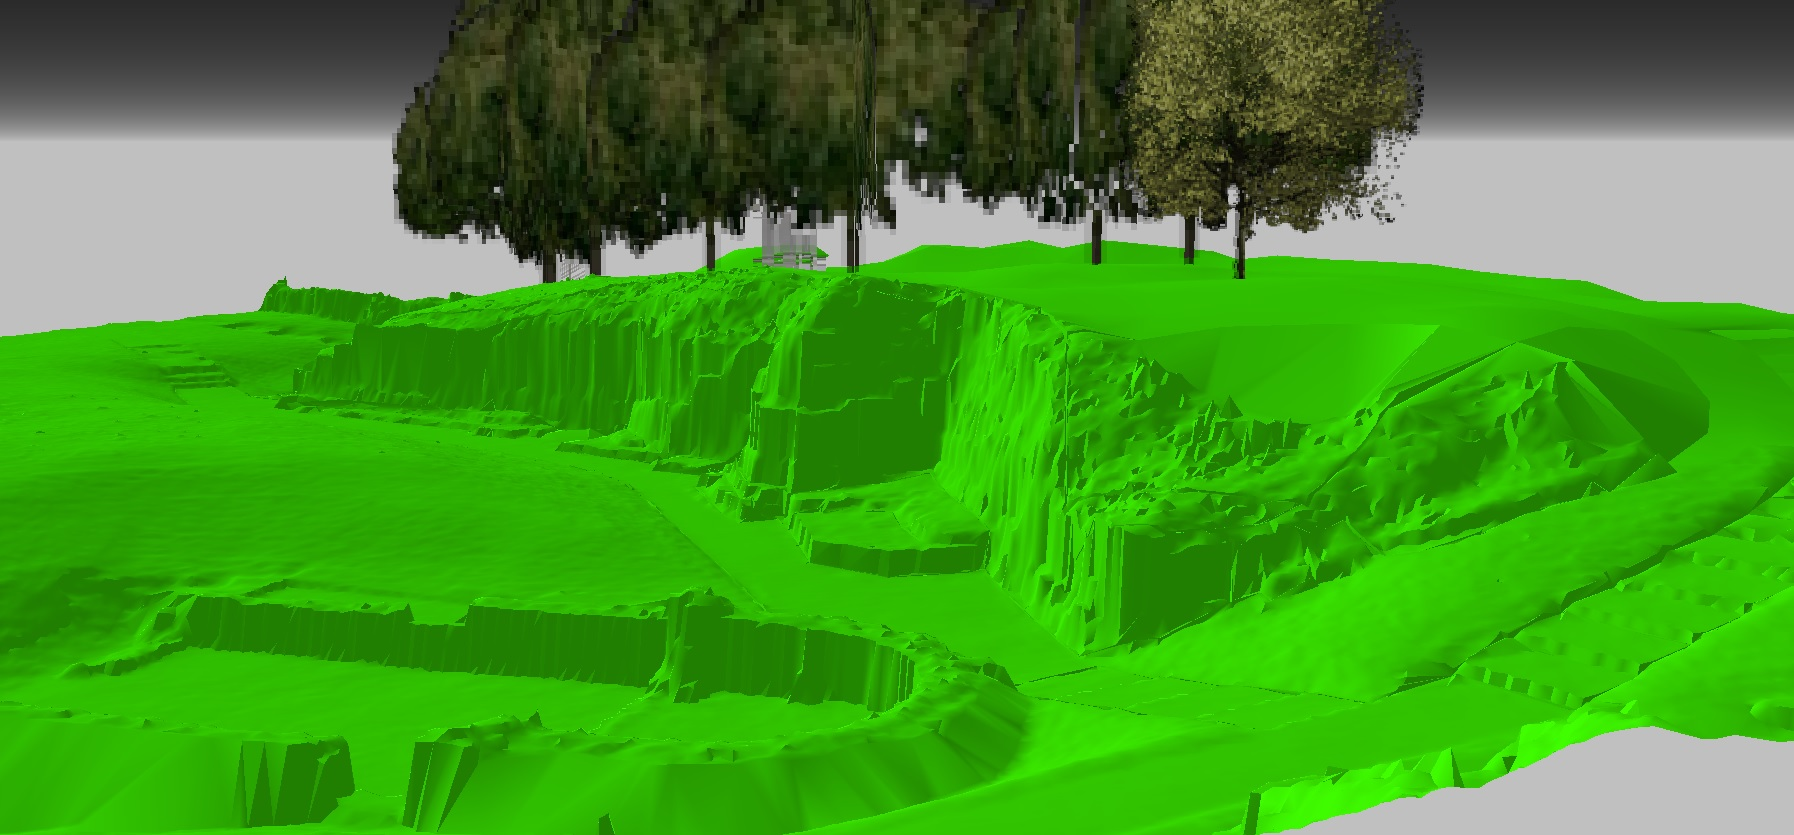 3D render of a field with trees.